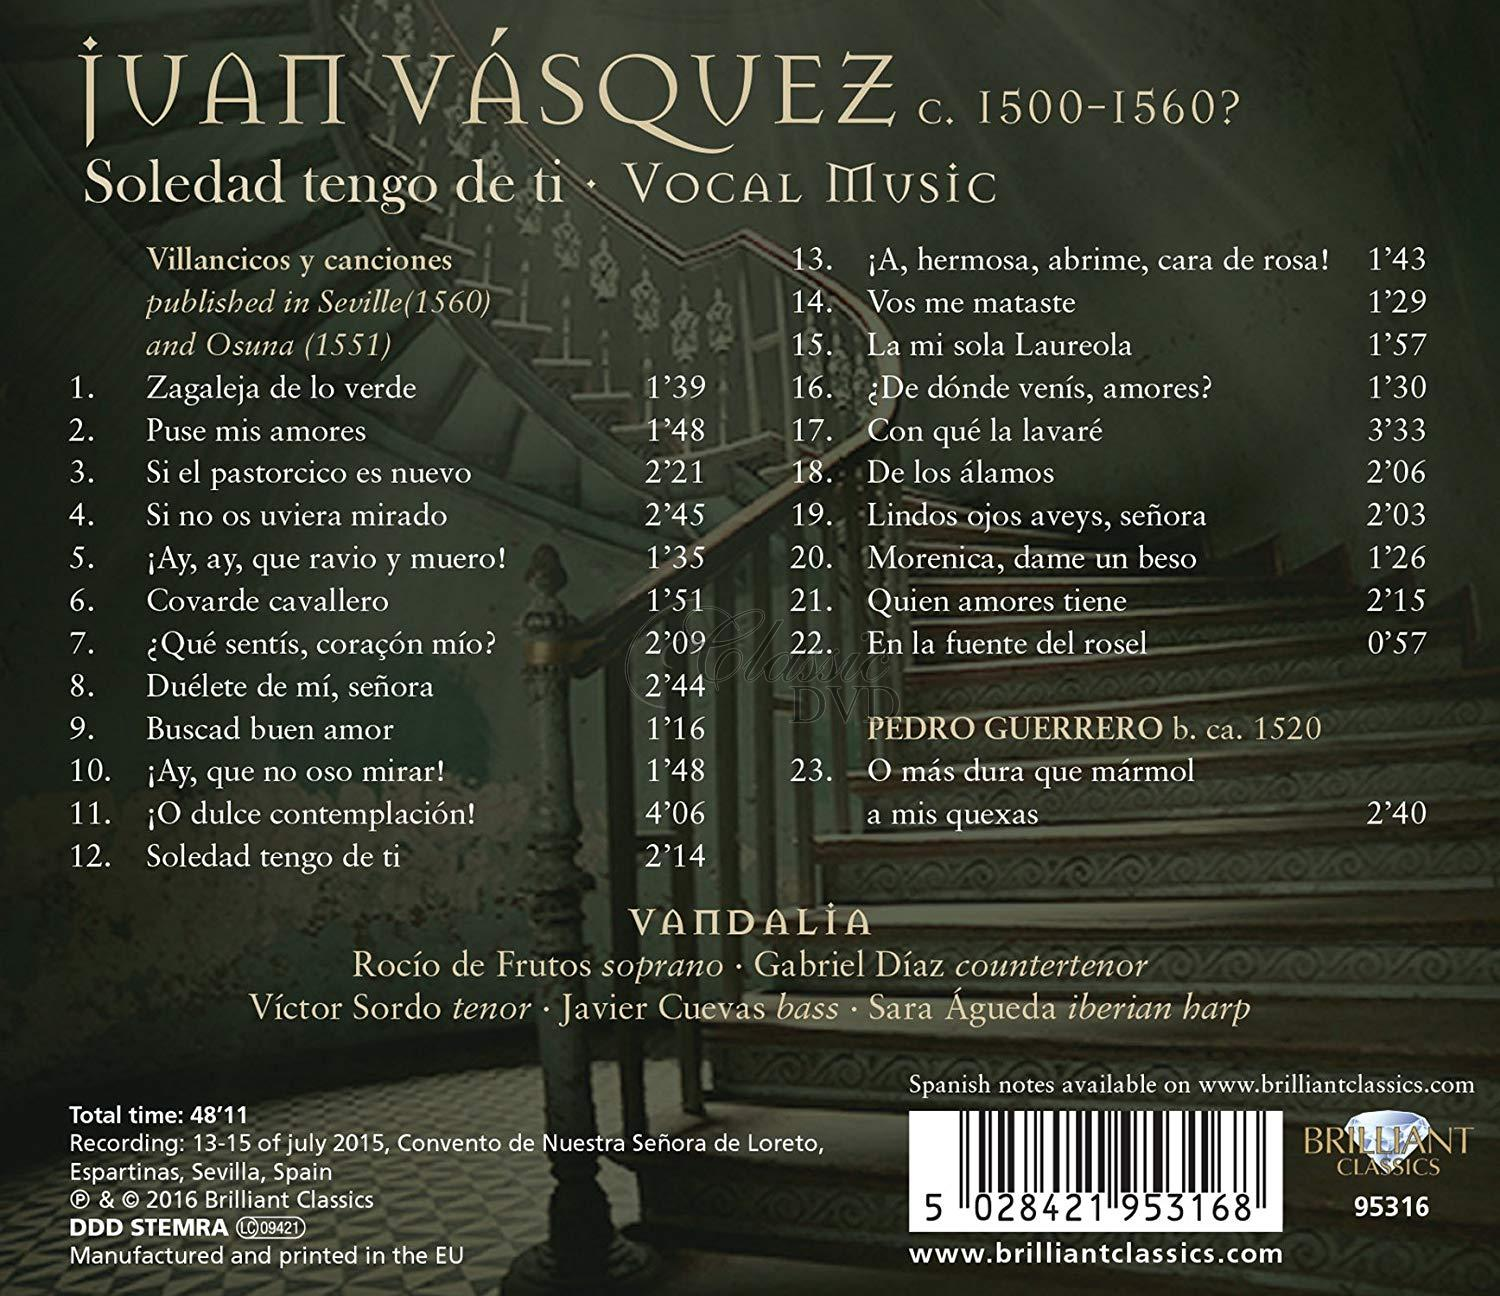 VASQUEZ: Vocal Music; Ensemble Vandalia (CD)